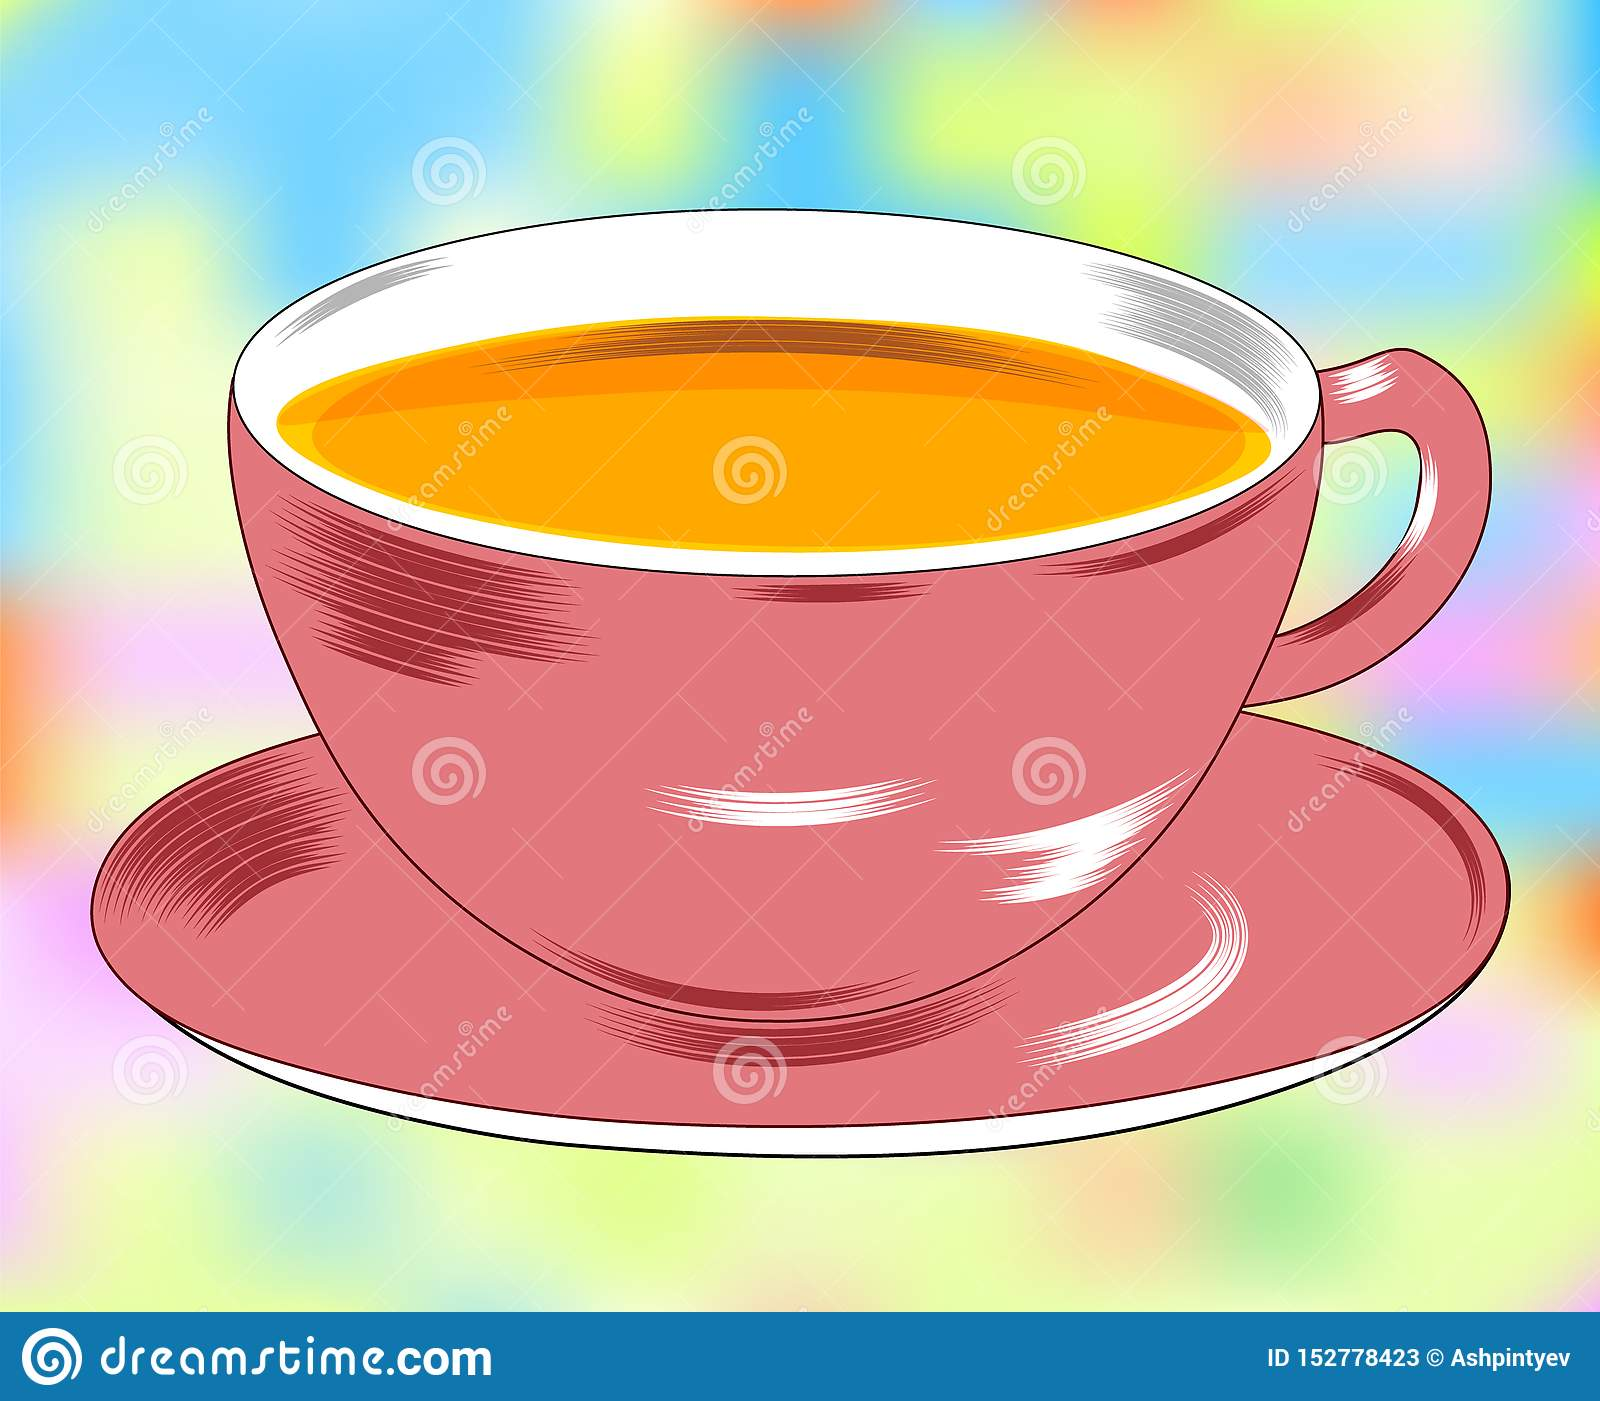 Flat Drawing Of A Cup And Saucer The Mug Is Filled With Tea Tea Party Isolated Beautiful Background Vector Stock Vector Illustration Of Healthy Style 152778423